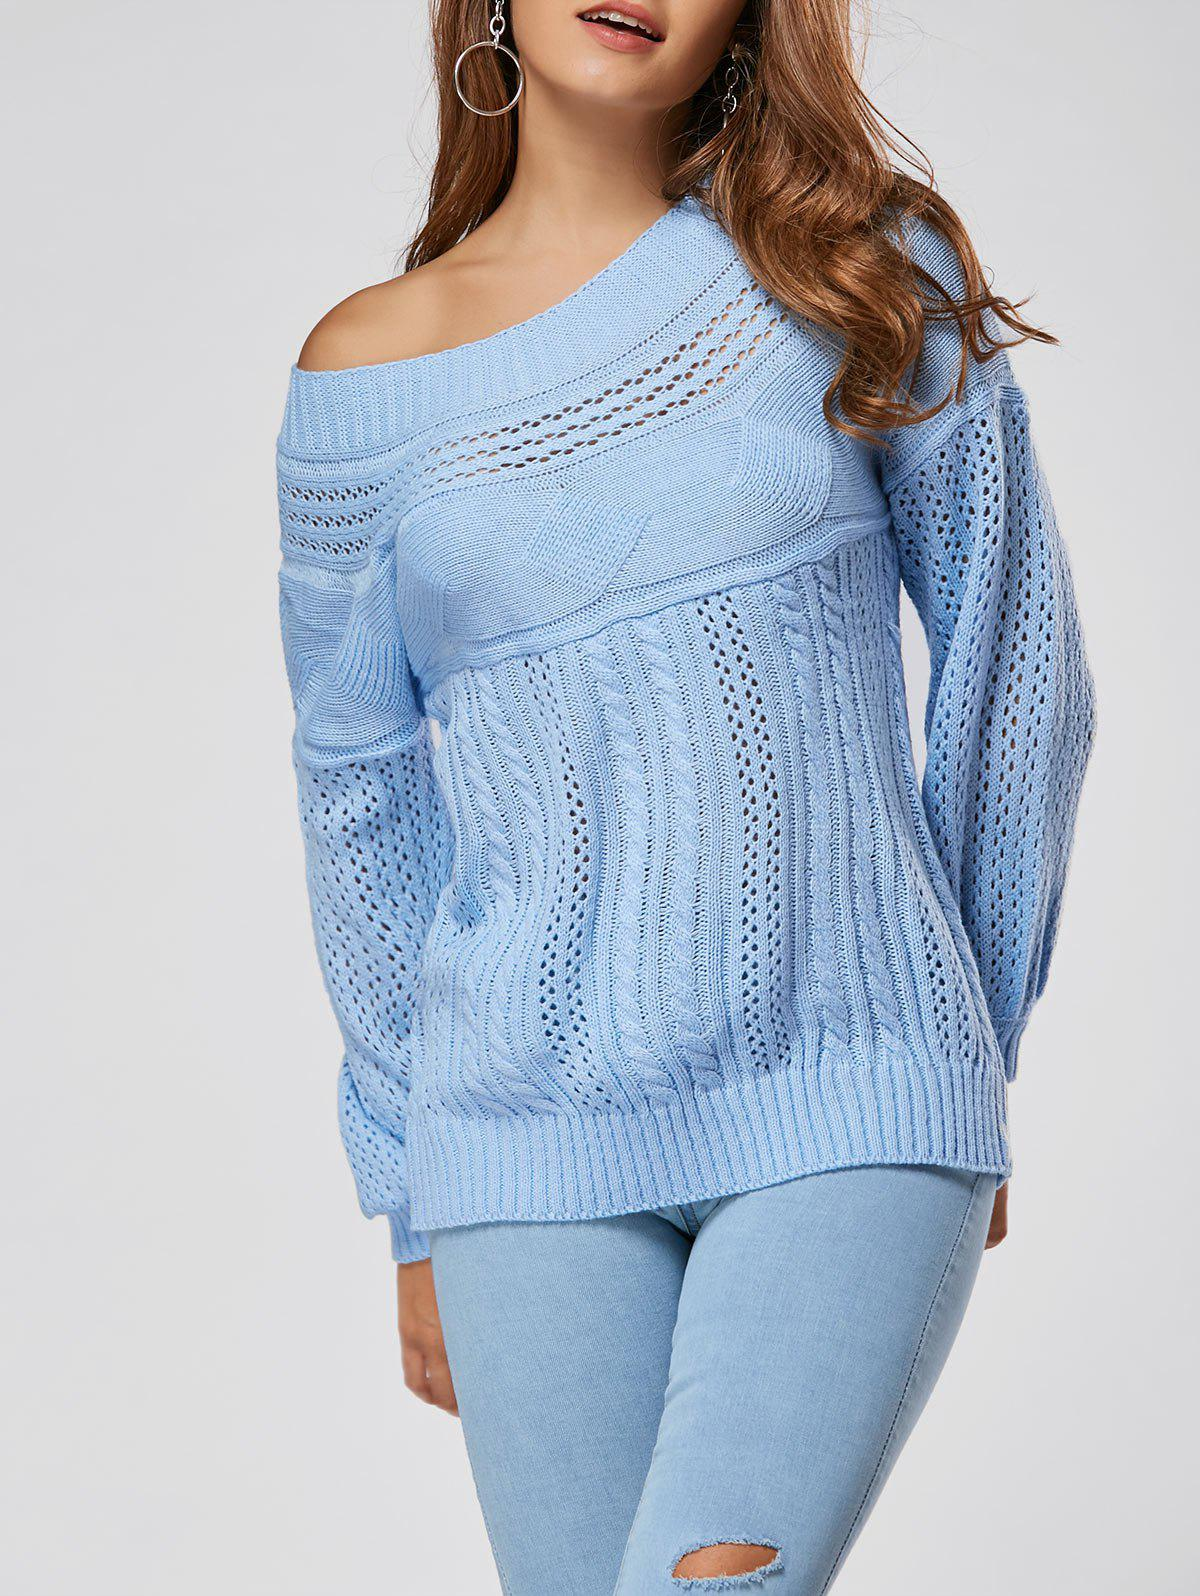 Casual Hollow Out Cable Knit SweaterWOMEN<br><br>Size: XL; Color: BLUE; Type: Pullovers; Material: Polyester; Sleeve Length: Full; Collar: Crew Neck; Style: Casual; Pattern Type: Solid; Season: Fall,Winter; Weight: 0.4700kg; Package Contents: 1 x Sweater;